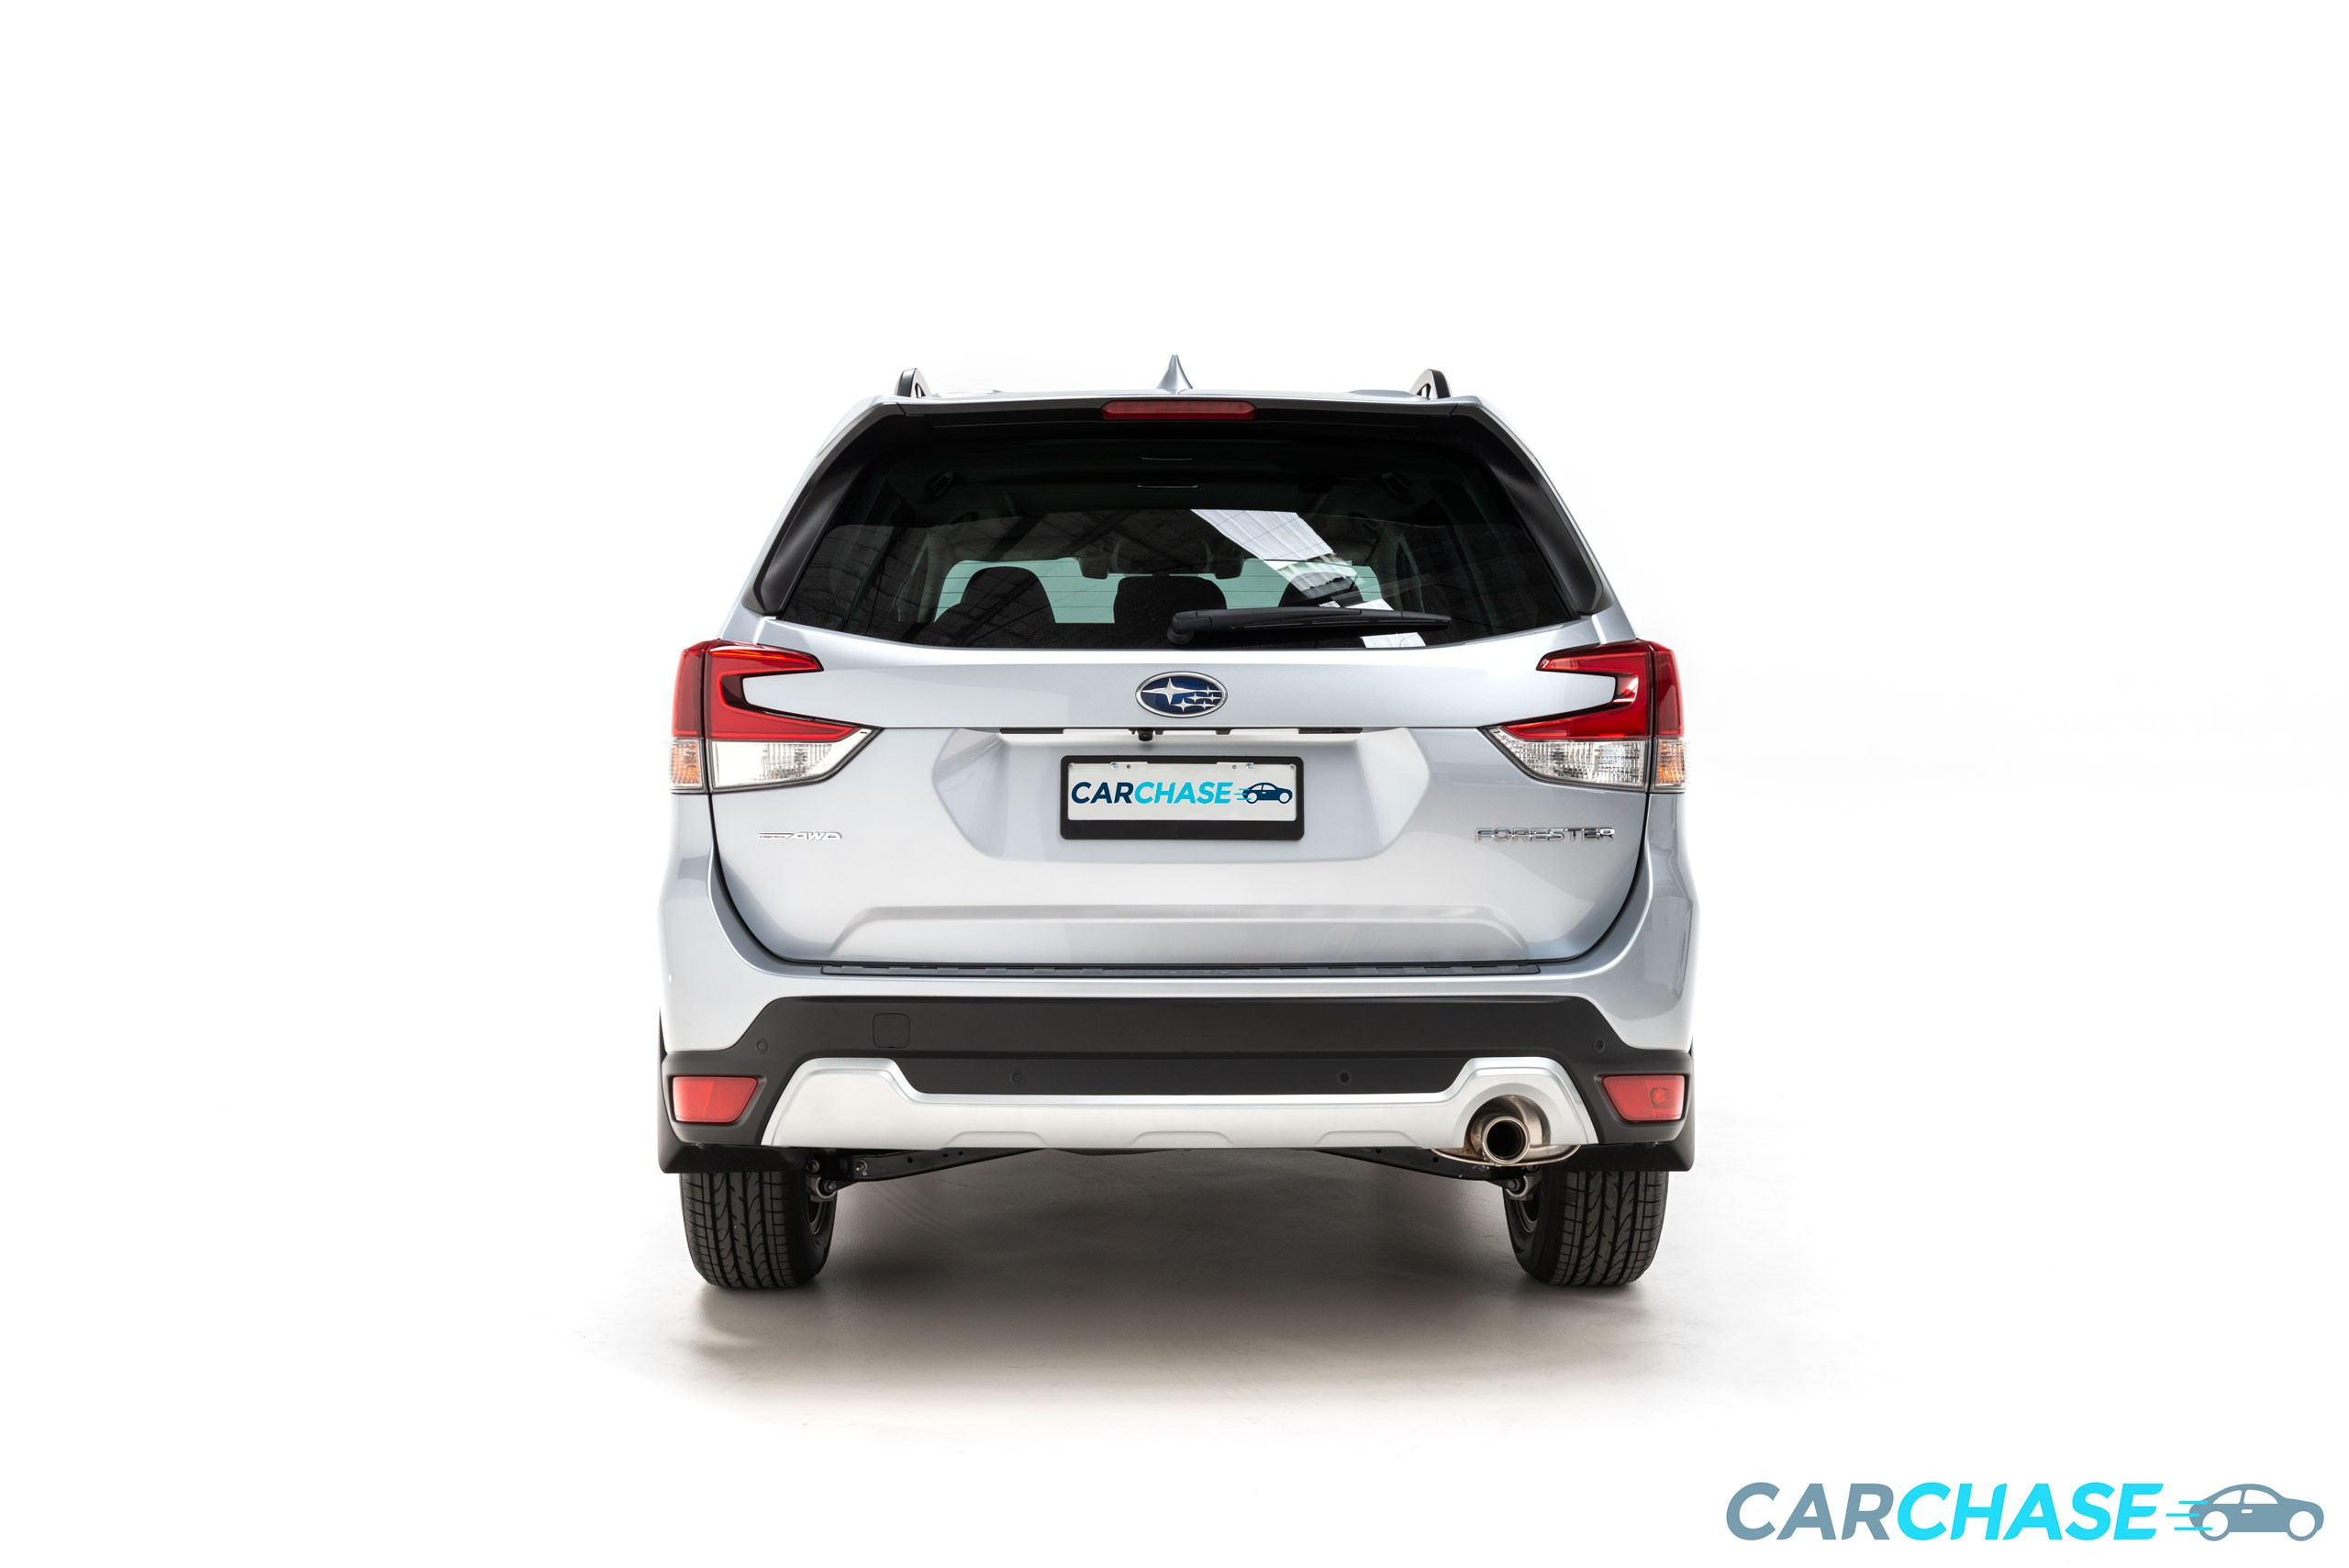 Image of rear profile of 2018 Subaru Forester 2.5i-S